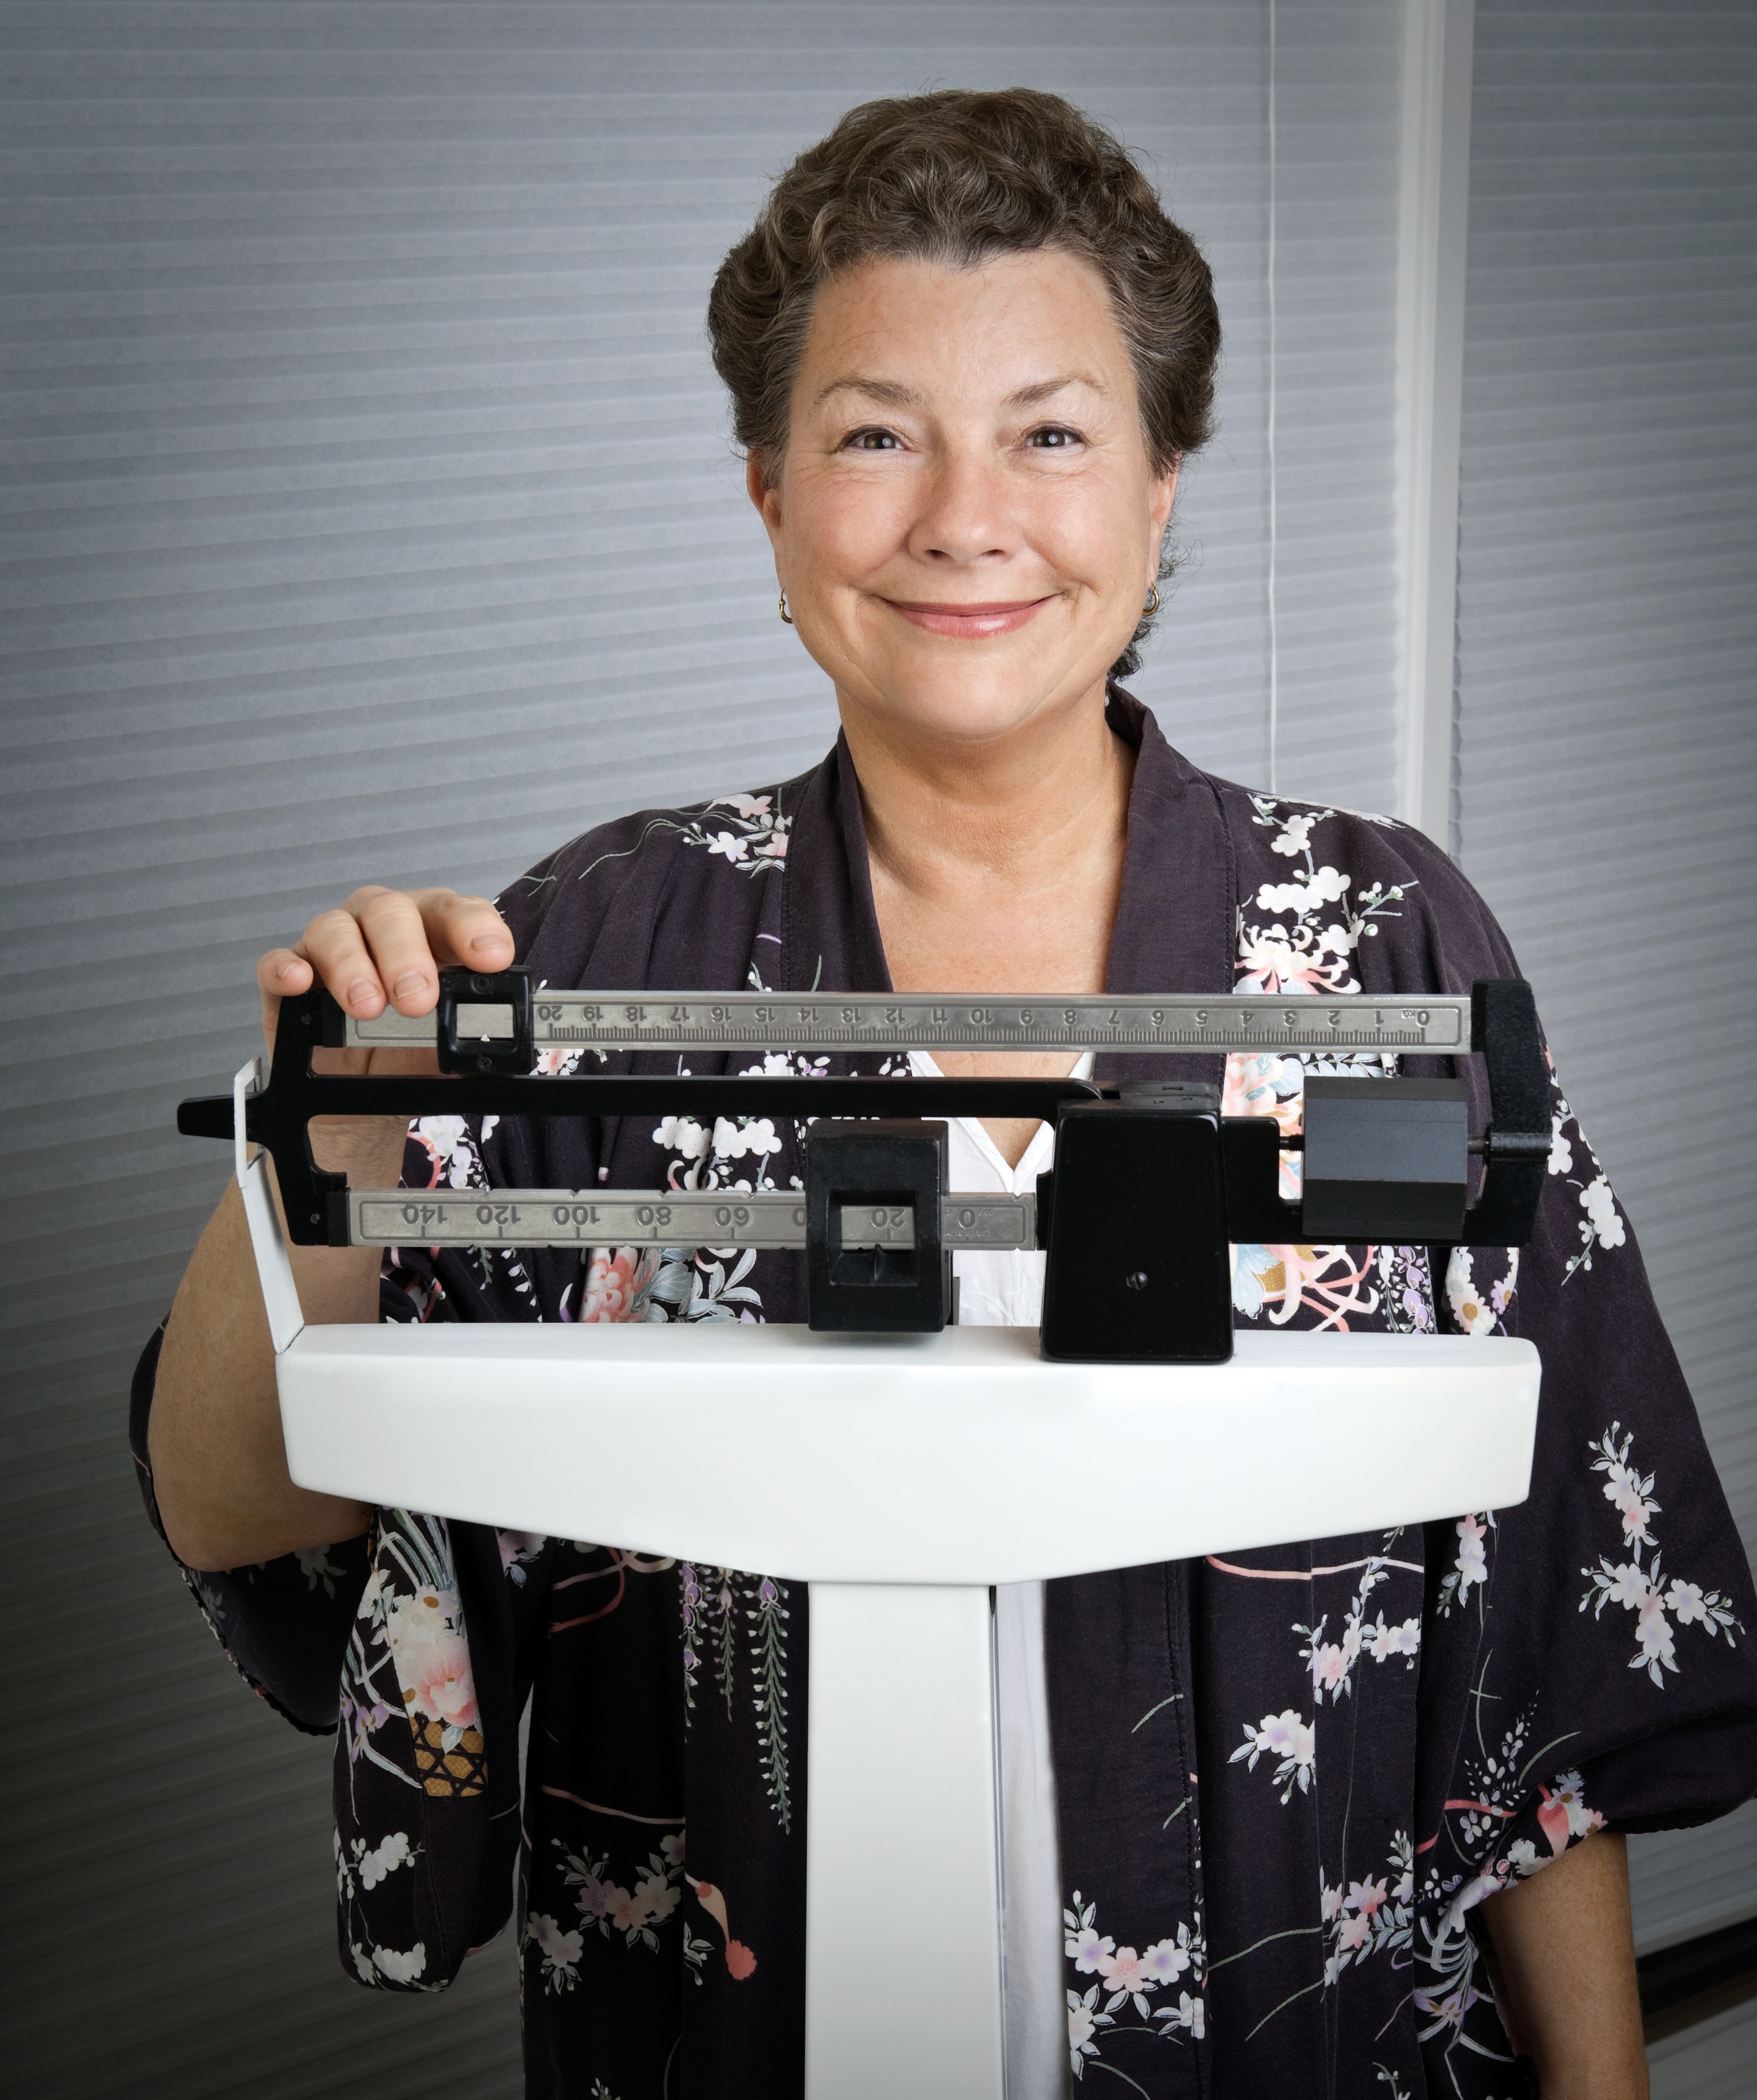 Weight loss chien acupuncture colorado springs co 719 799 3988 acupuncture helps weight loss solutioingenieria Gallery